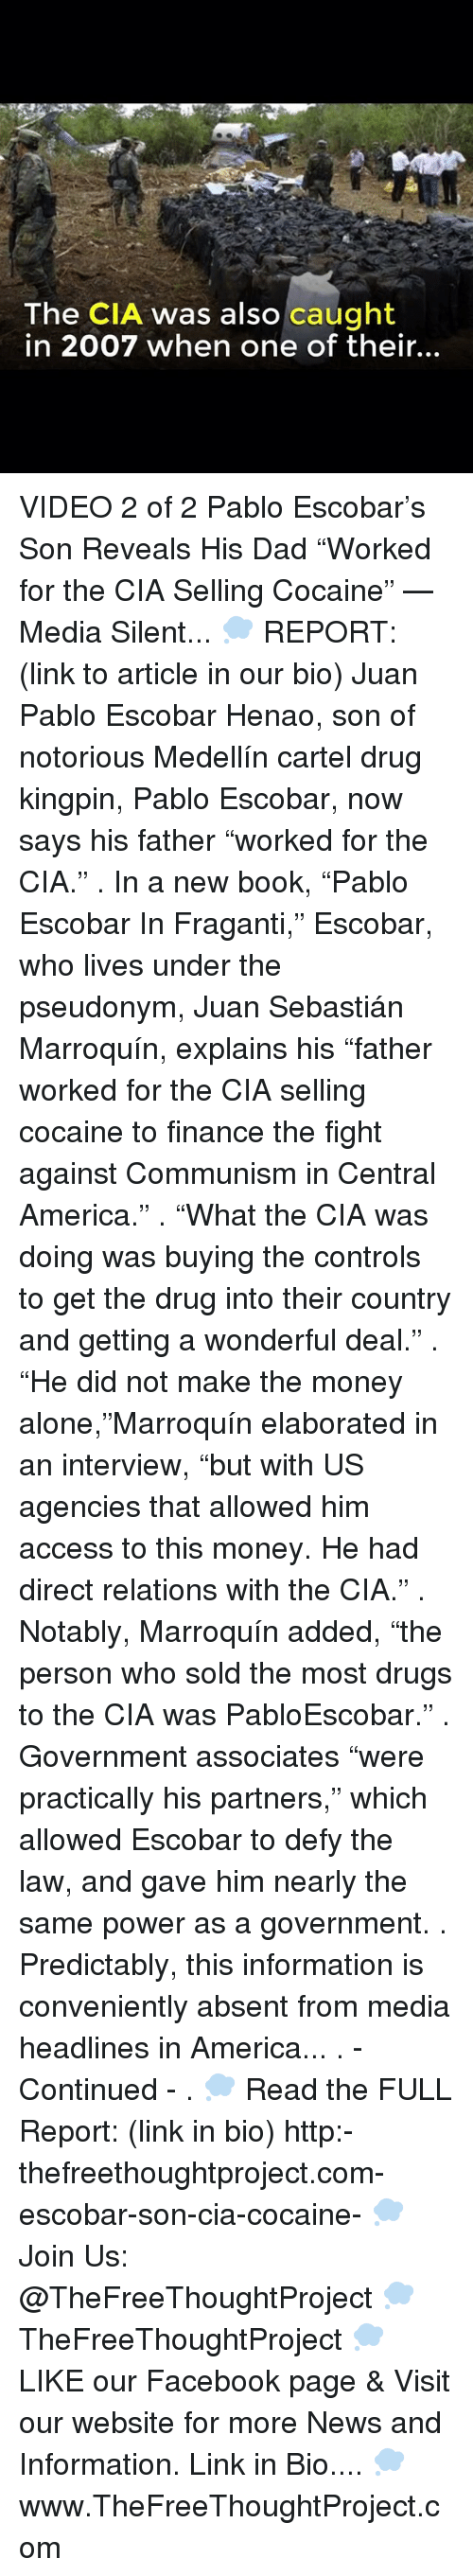 "Being Alone, America, and Dad: The CIA was also caught  in 2007 when one of their... VIDEO 2 of 2 Pablo Escobar's Son Reveals His Dad ""Worked for the CIA Selling Cocaine"" — Media Silent... 💭 REPORT: (link to article in our bio) Juan Pablo Escobar Henao, son of notorious Medellín cartel drug kingpin, Pablo Escobar, now says his father ""worked for the CIA."" . In a new book, ""Pablo Escobar In Fraganti,"" Escobar, who lives under the pseudonym, Juan Sebastián Marroquín, explains his ""father worked for the CIA selling cocaine to finance the fight against Communism in Central America."" . ""What the CIA was doing was buying the controls to get the drug into their country and getting a wonderful deal."" . ""He did not make the money alone,""Marroquín elaborated in an interview, ""but with US agencies that allowed him access to this money. He had direct relations with the CIA."" . Notably, Marroquín added, ""the person who sold the most drugs to the CIA was PabloEscobar."" . Government associates ""were practically his partners,"" which allowed Escobar to defy the law, and gave him nearly the same power as a government. . Predictably, this information is conveniently absent from media headlines in America... . - Continued - . 💭 Read the FULL Report: (link in bio) http:-thefreethoughtproject.com-escobar-son-cia-cocaine- 💭 Join Us: @TheFreeThoughtProject 💭 TheFreeThoughtProject 💭 LIKE our Facebook page & Visit our website for more News and Information. Link in Bio.... 💭 www.TheFreeThoughtProject.com"